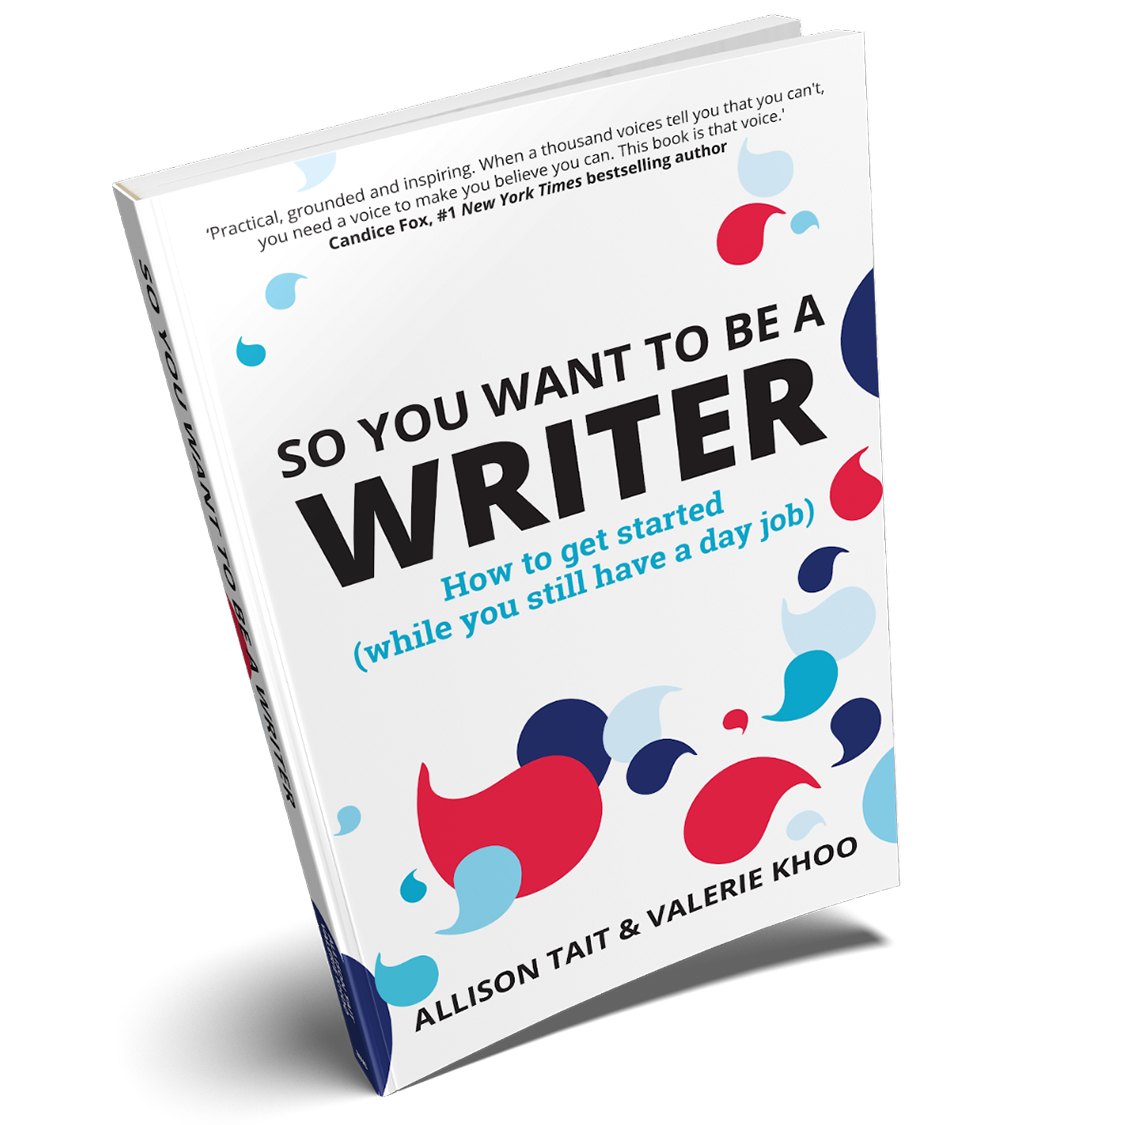 So-You-Want-To-Be-A-Writer-–-THE-BOOK-feature-image